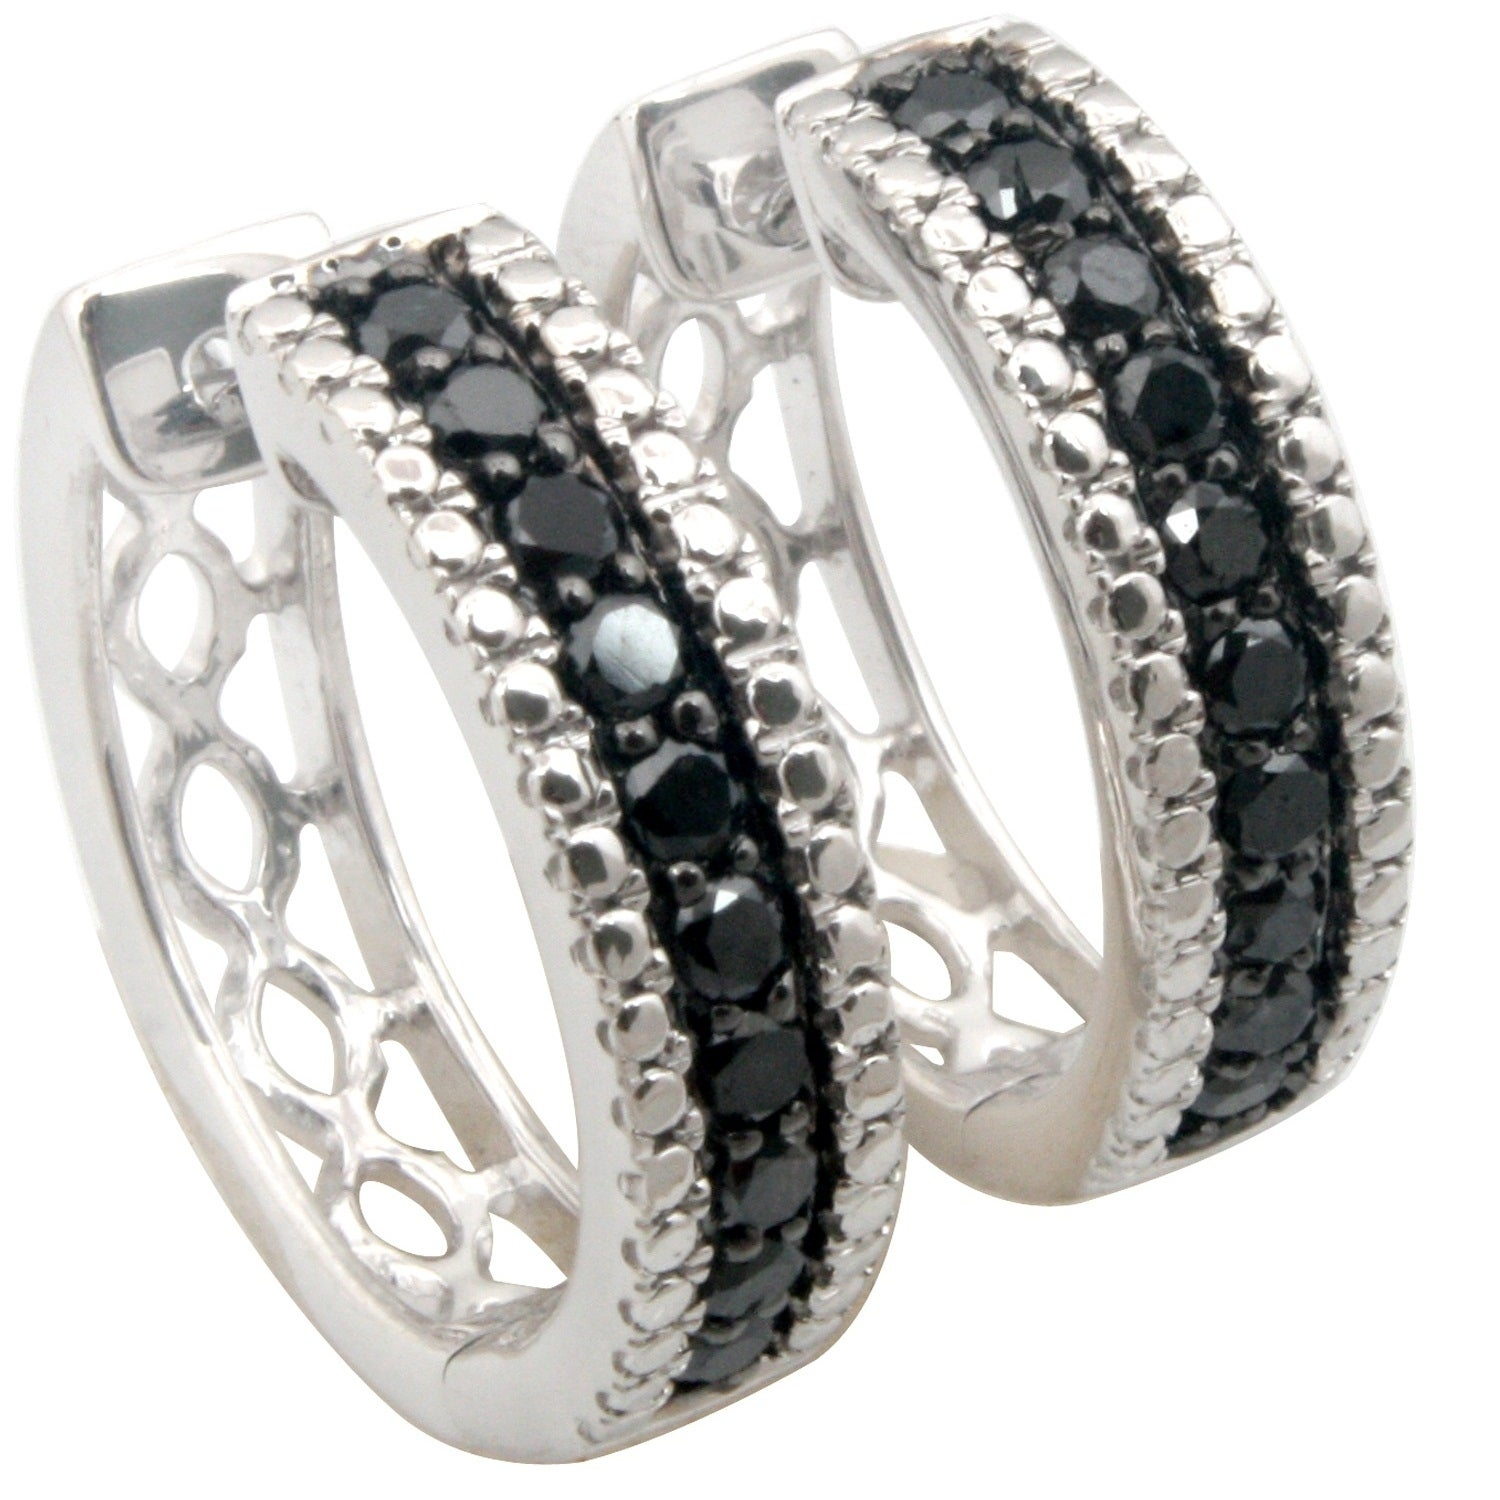 Prism Jewel Round Brilliant Cut Black Diamond Hoop Earring - Thumbnail 0